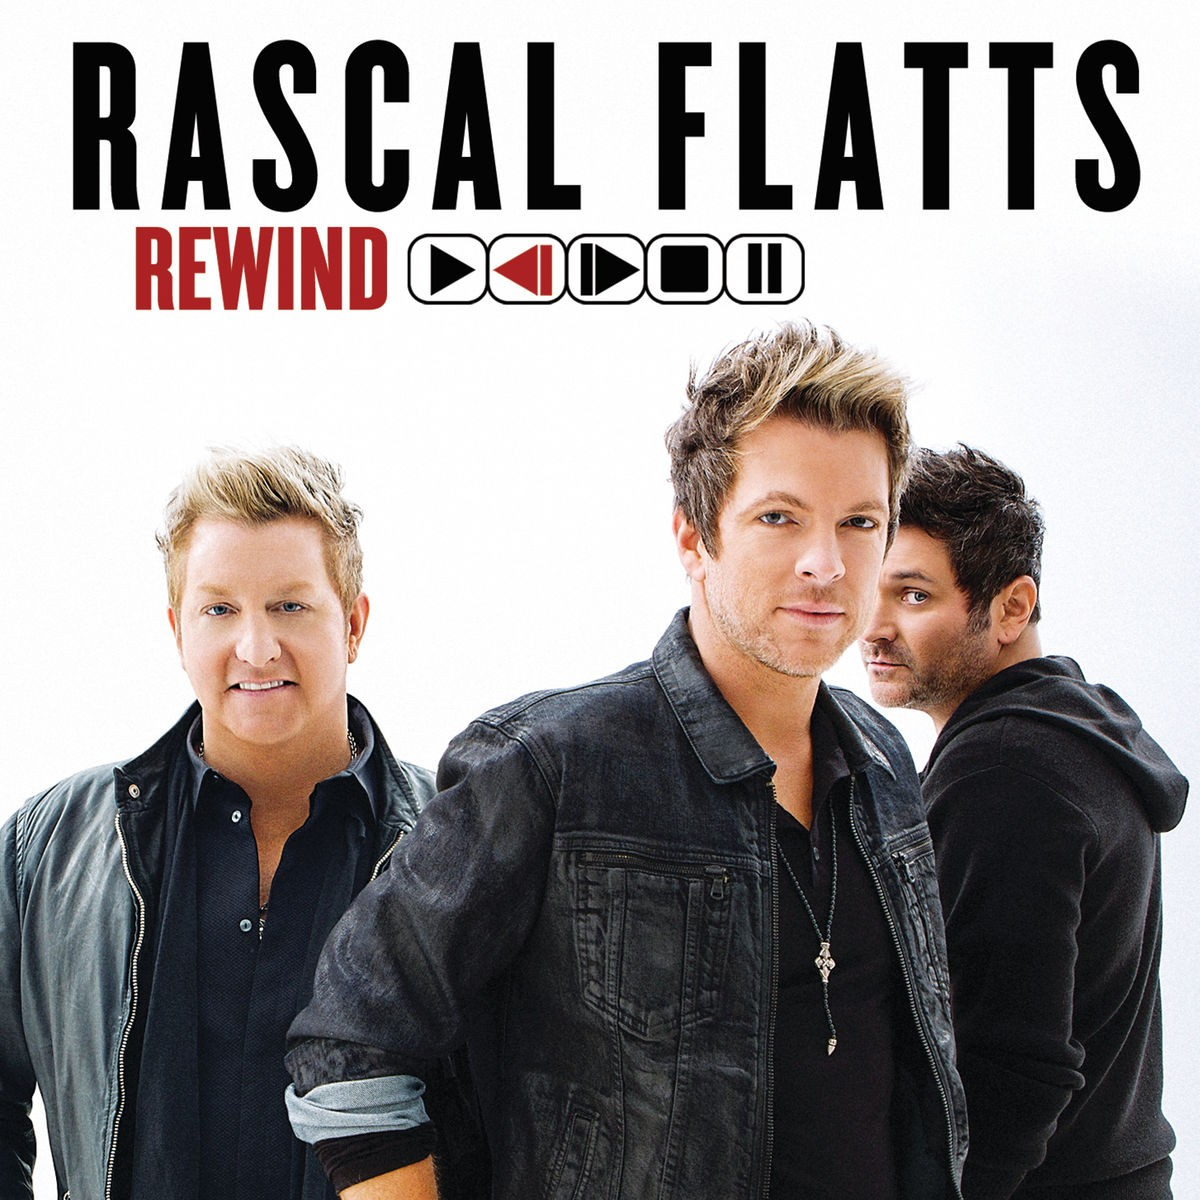 Rascal Flatts - Rewind CD - 06025 3785738